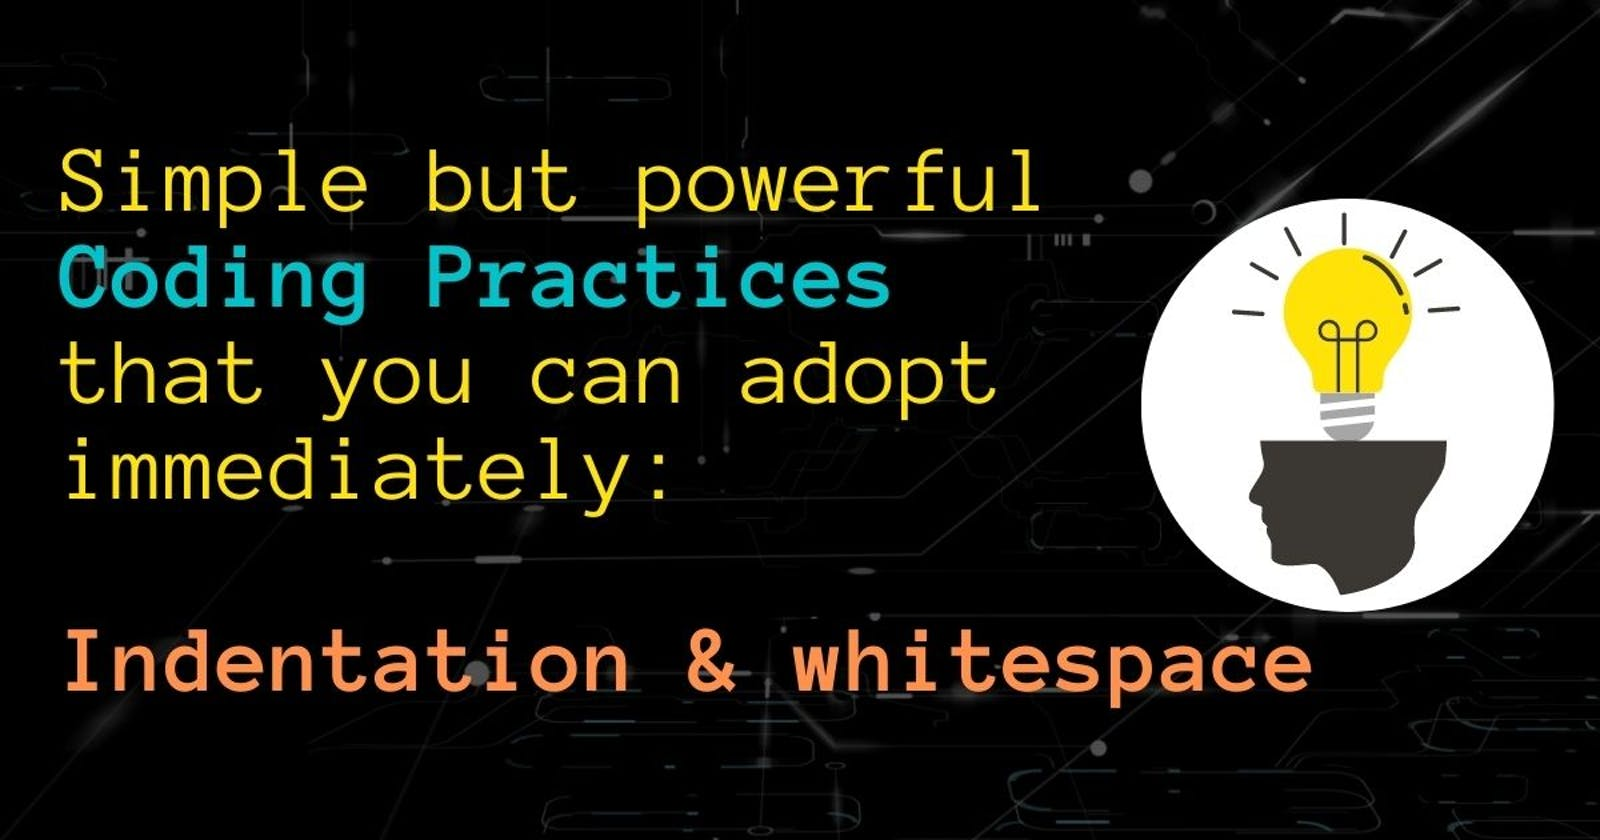 Simple but powerful Coding Practices that you can adopt immediately: Indentation & whitespace